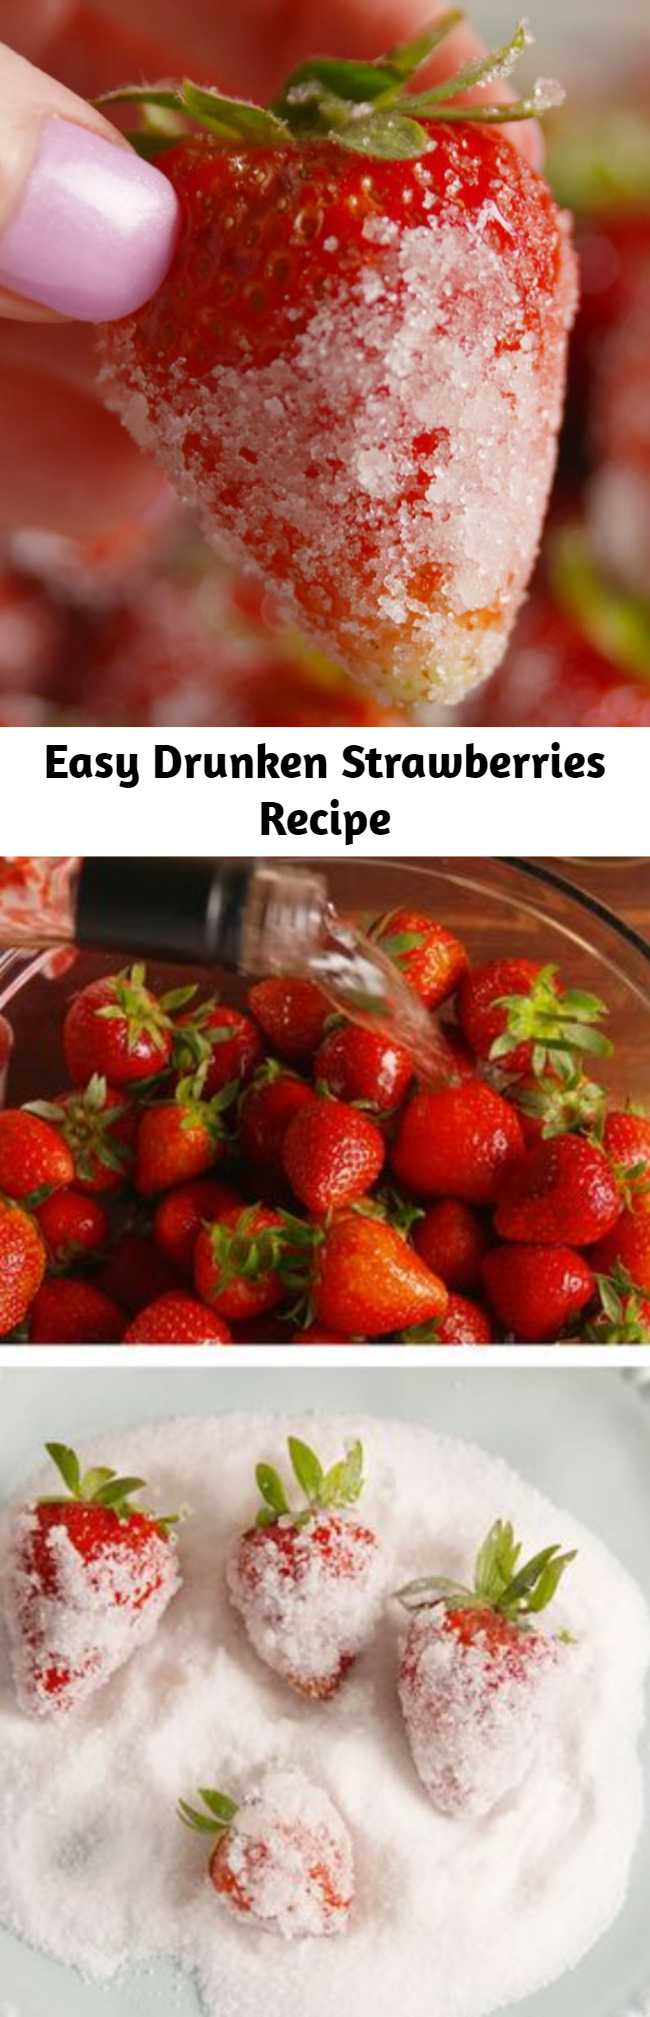 Easy Drunken Strawberries Recipe - This easy drunken strawberries recipe or whatever you want to call them, you'll be calling them the perfect summer treat! Perfect to eat by themsleves or top a dessert. Easy to make with just 3 ingredients, you are going to love these boozy frozen strawberries!